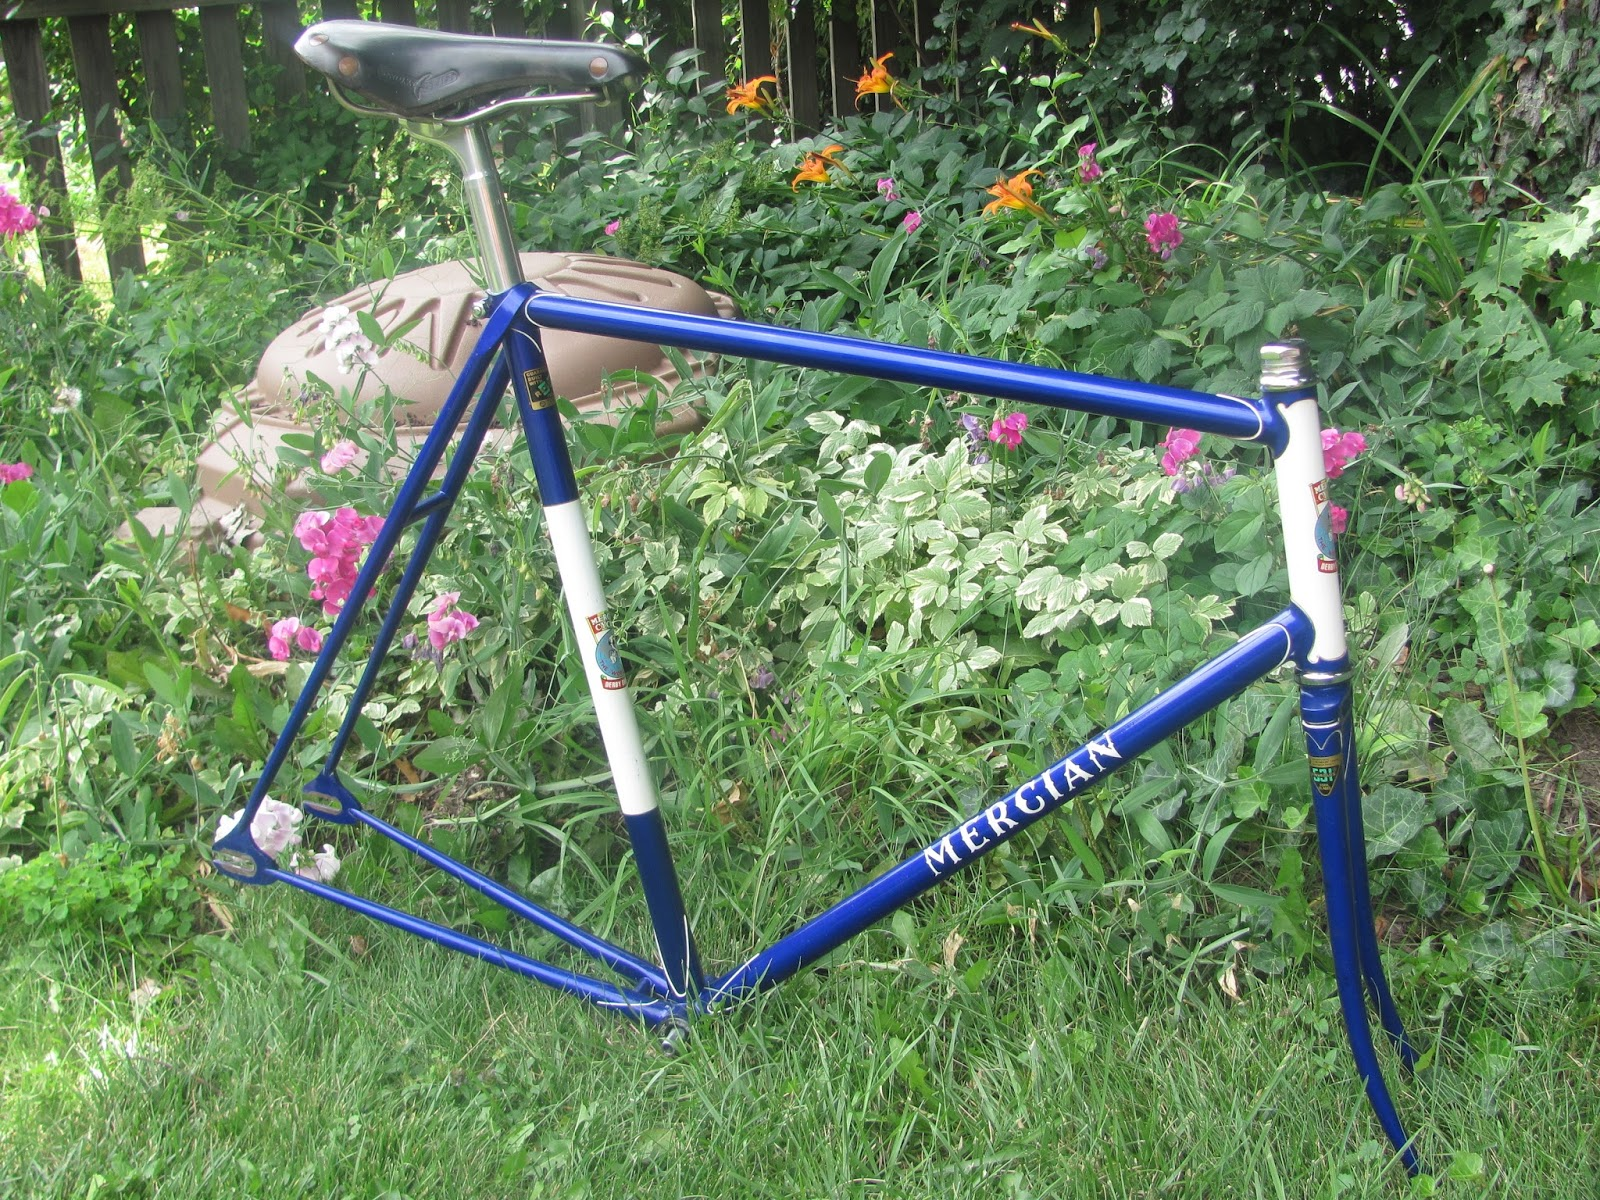 The Retrogrouch: The Perfect Number of Bikes?